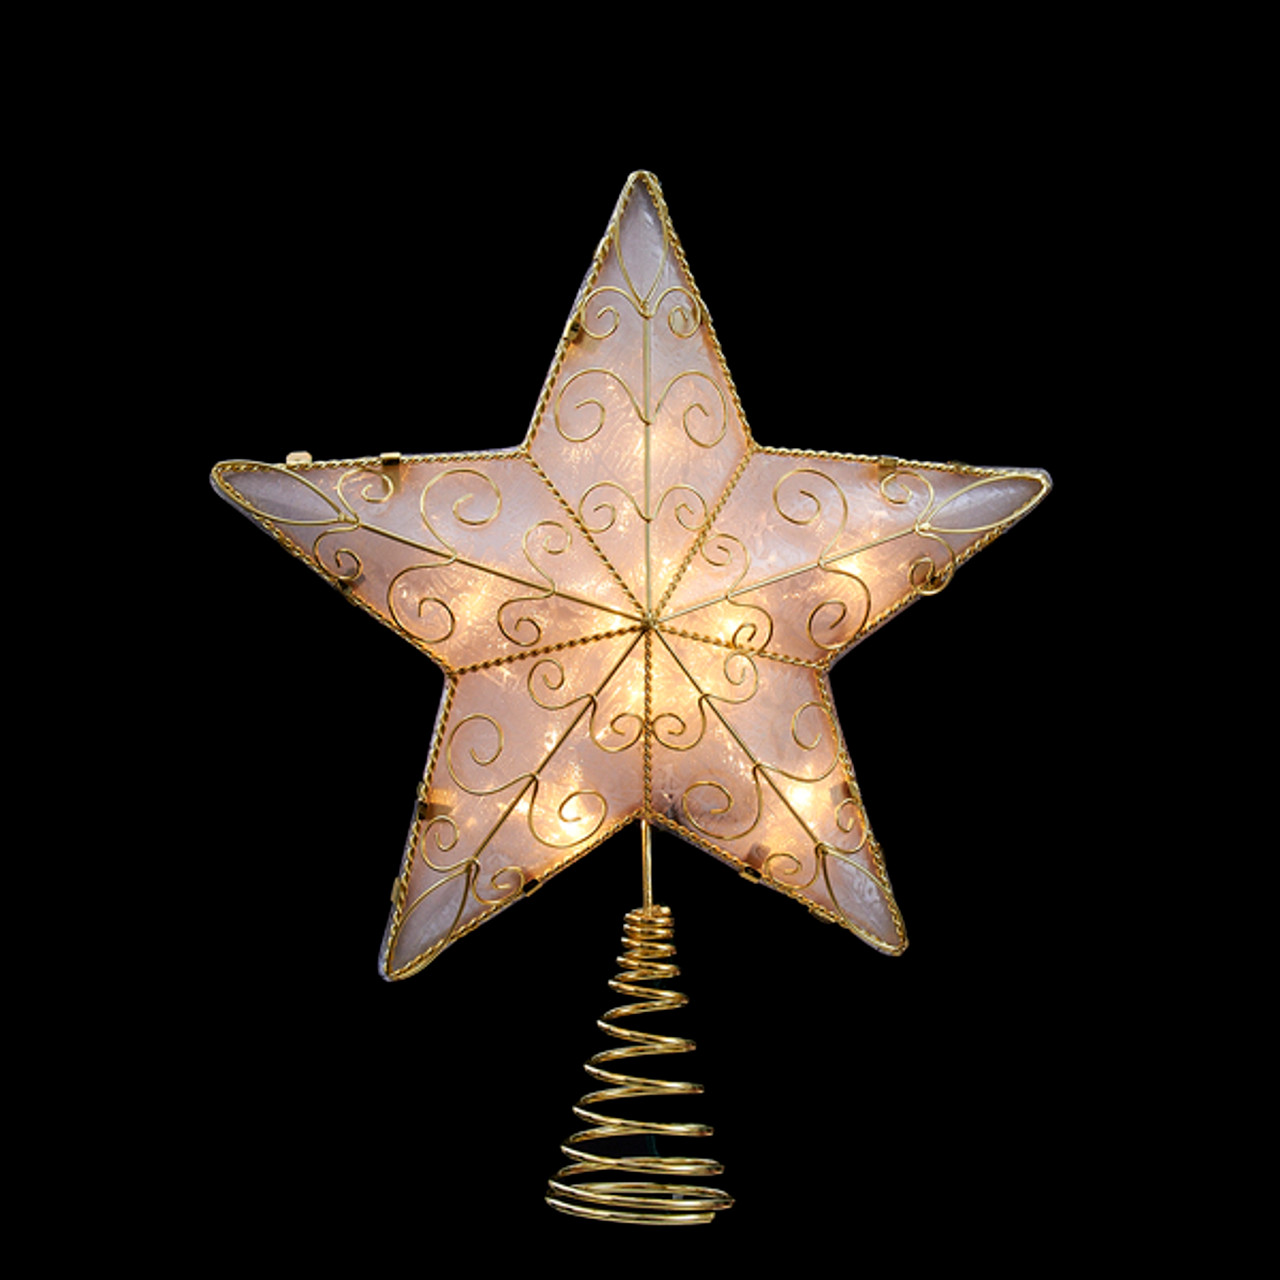 11 75 Lighted Gold Reflector Star Christmas Tree Topper Clear Lights 31341805